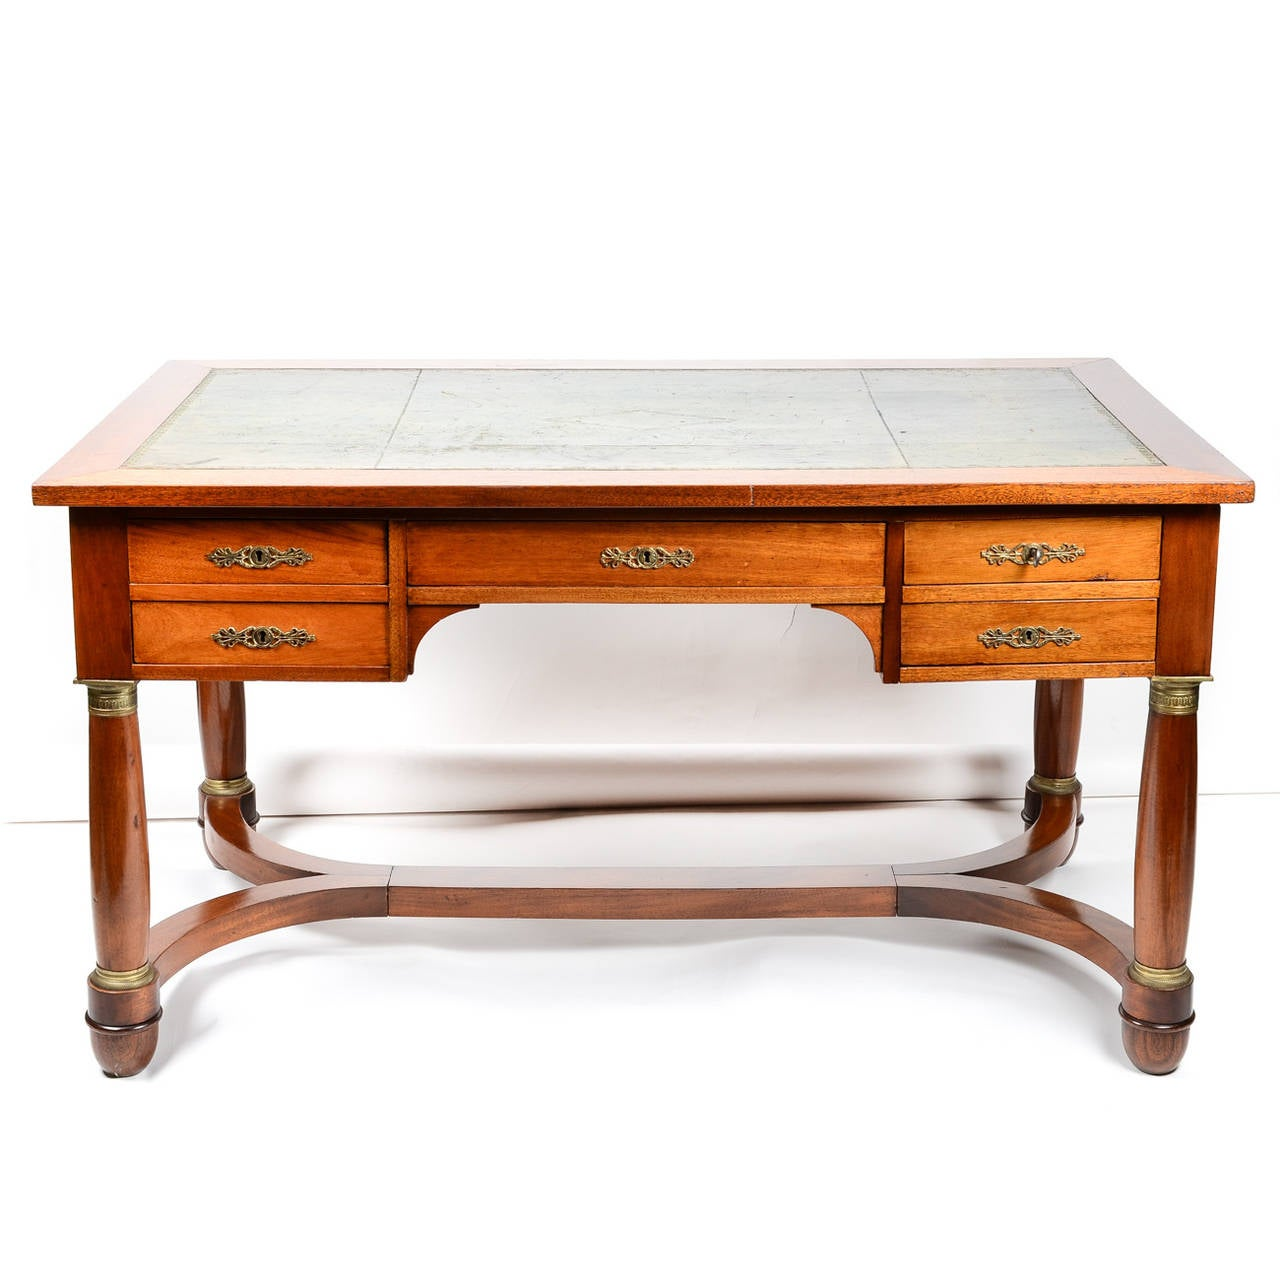 French Mahogany Desk With Chair In The Empire Style At 1stdibs